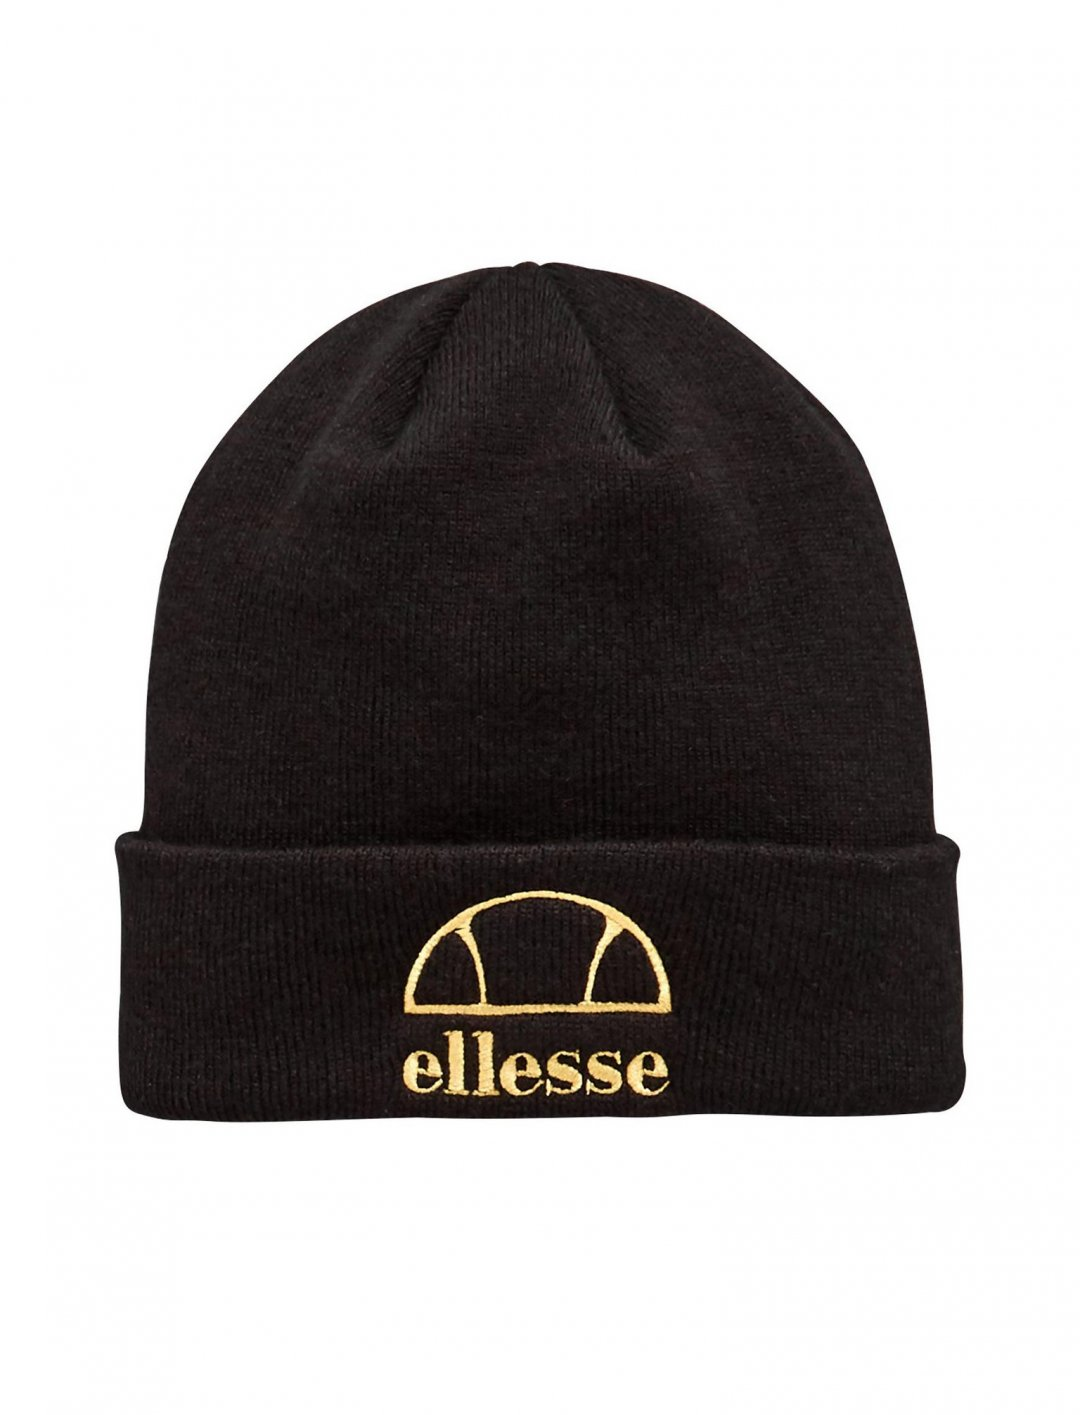 "Beanie Hat {""id"":16,""product_section_id"":1,""name"":""Accessories"",""order"":15} Ellesse"